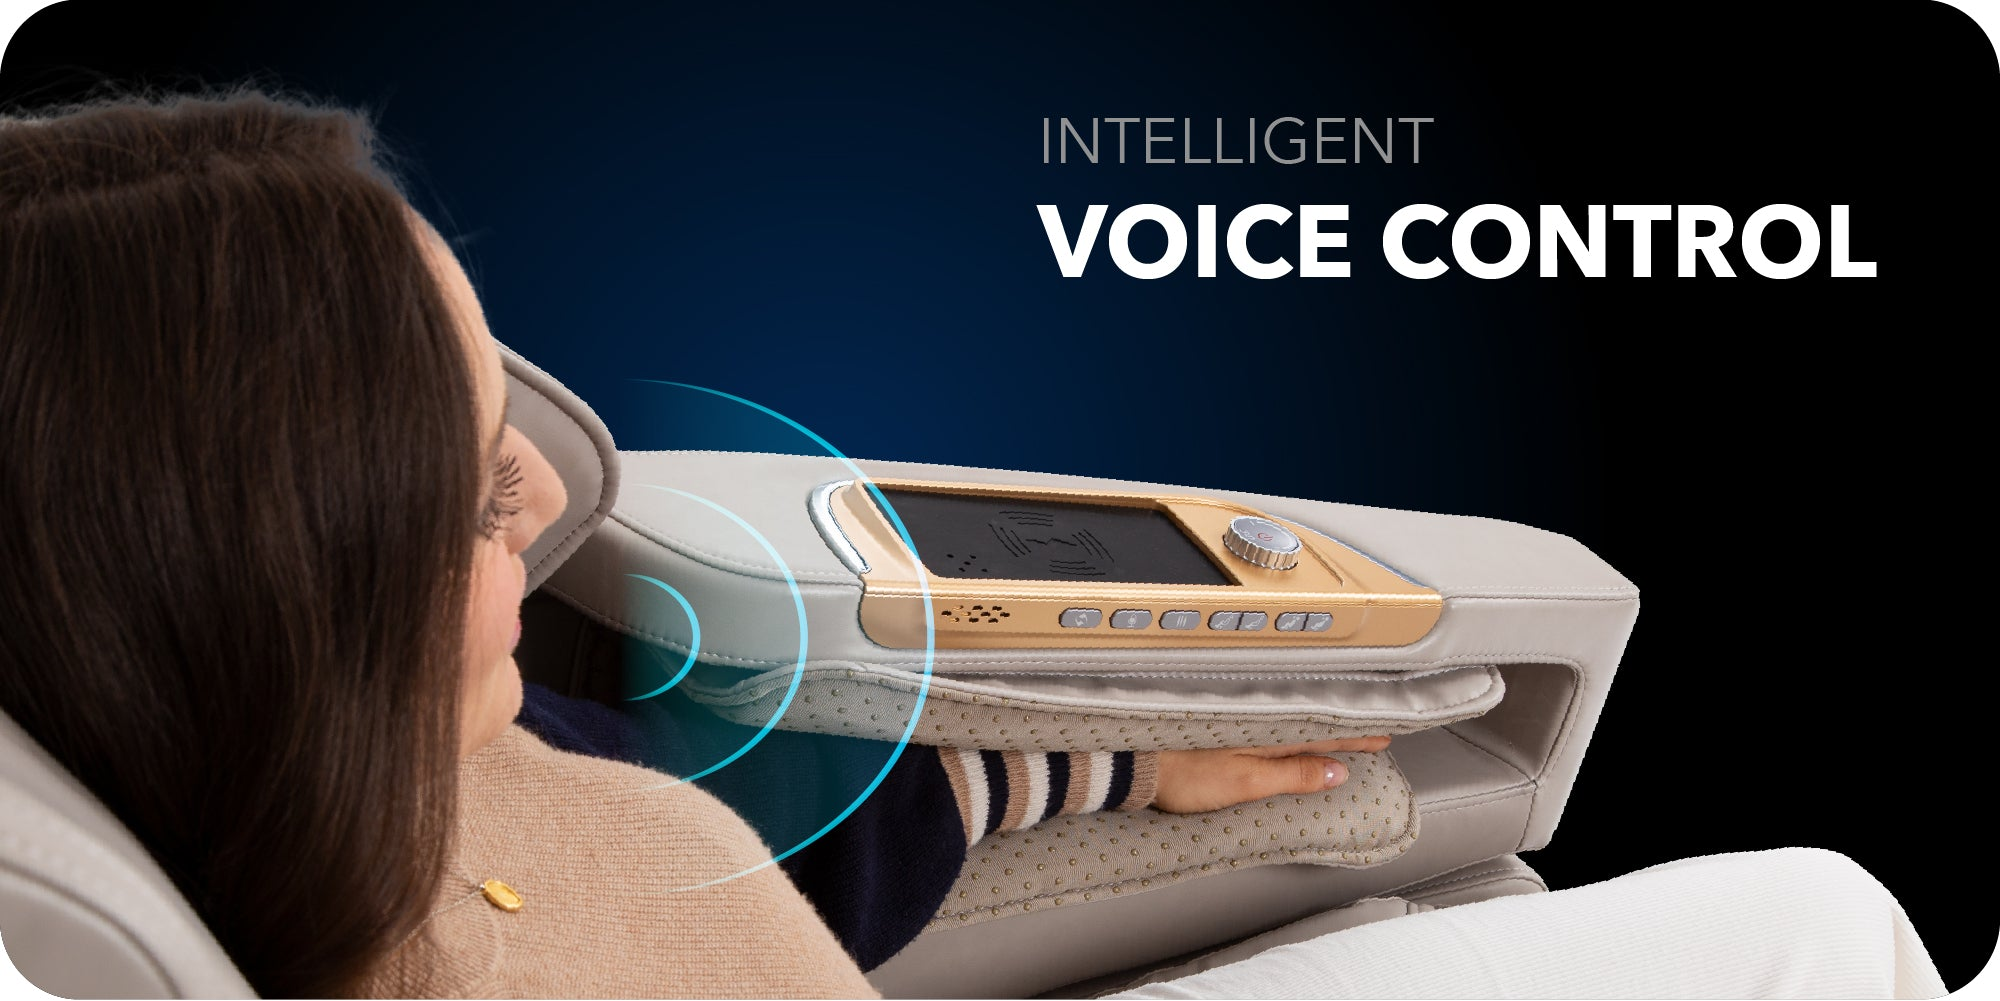 Allure offer voice control feature